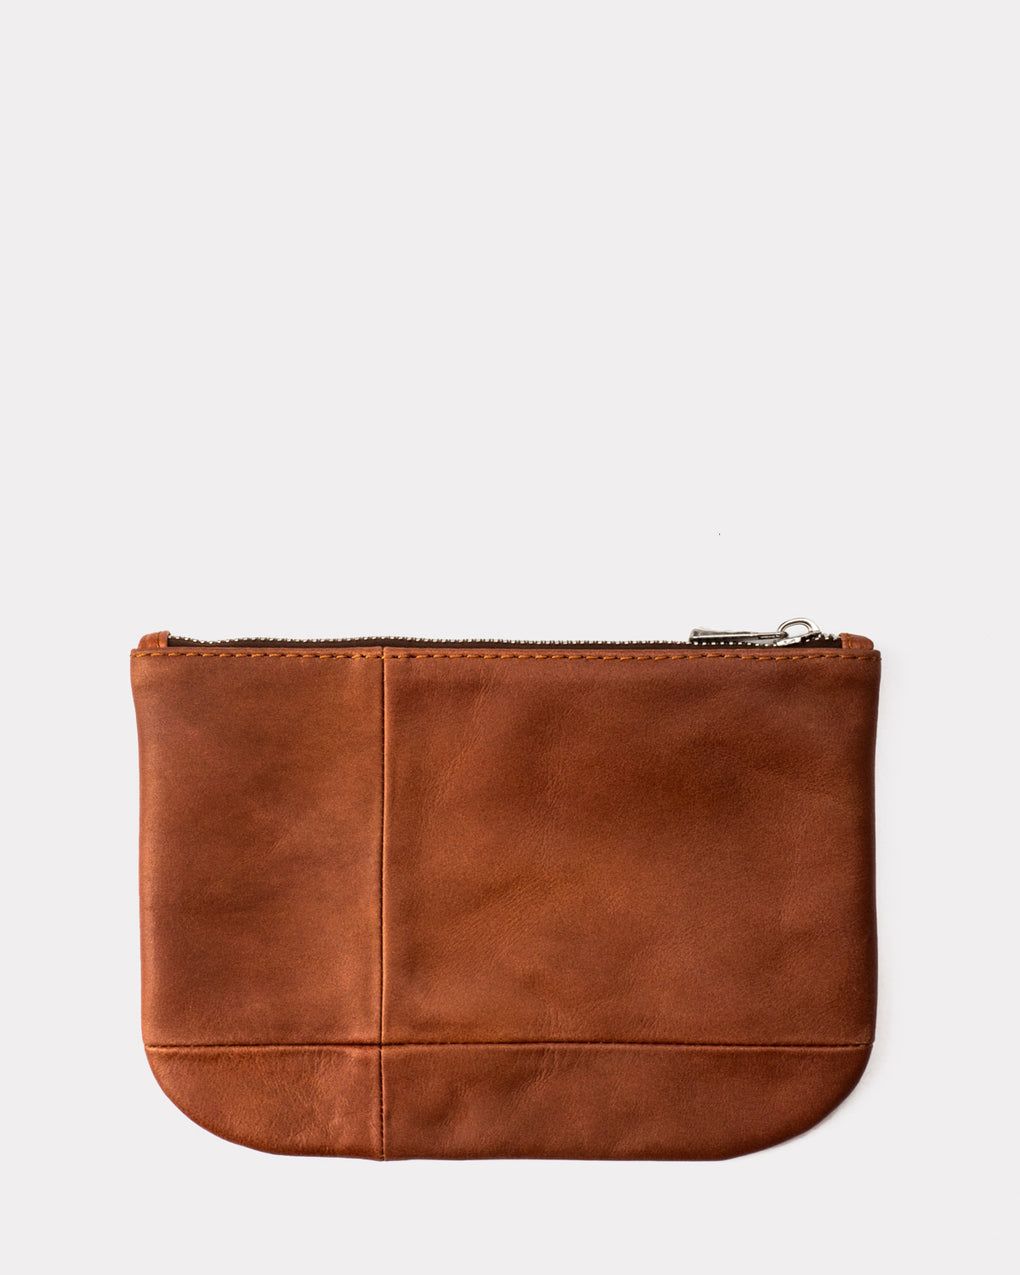 Bauhaus Pouch Medium - Crema